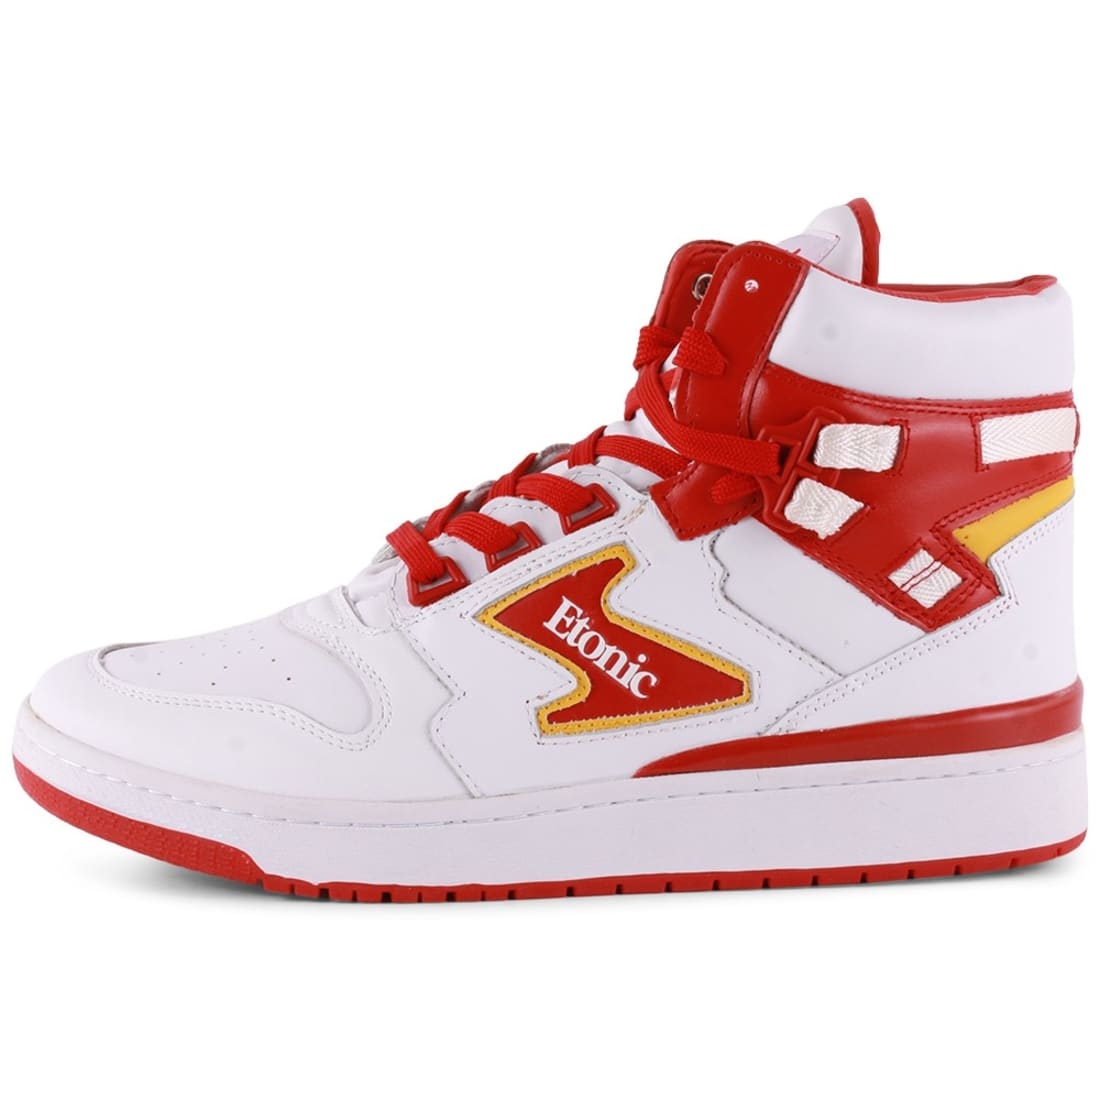 Etonic The Dream 1  e7c75dda9cf6